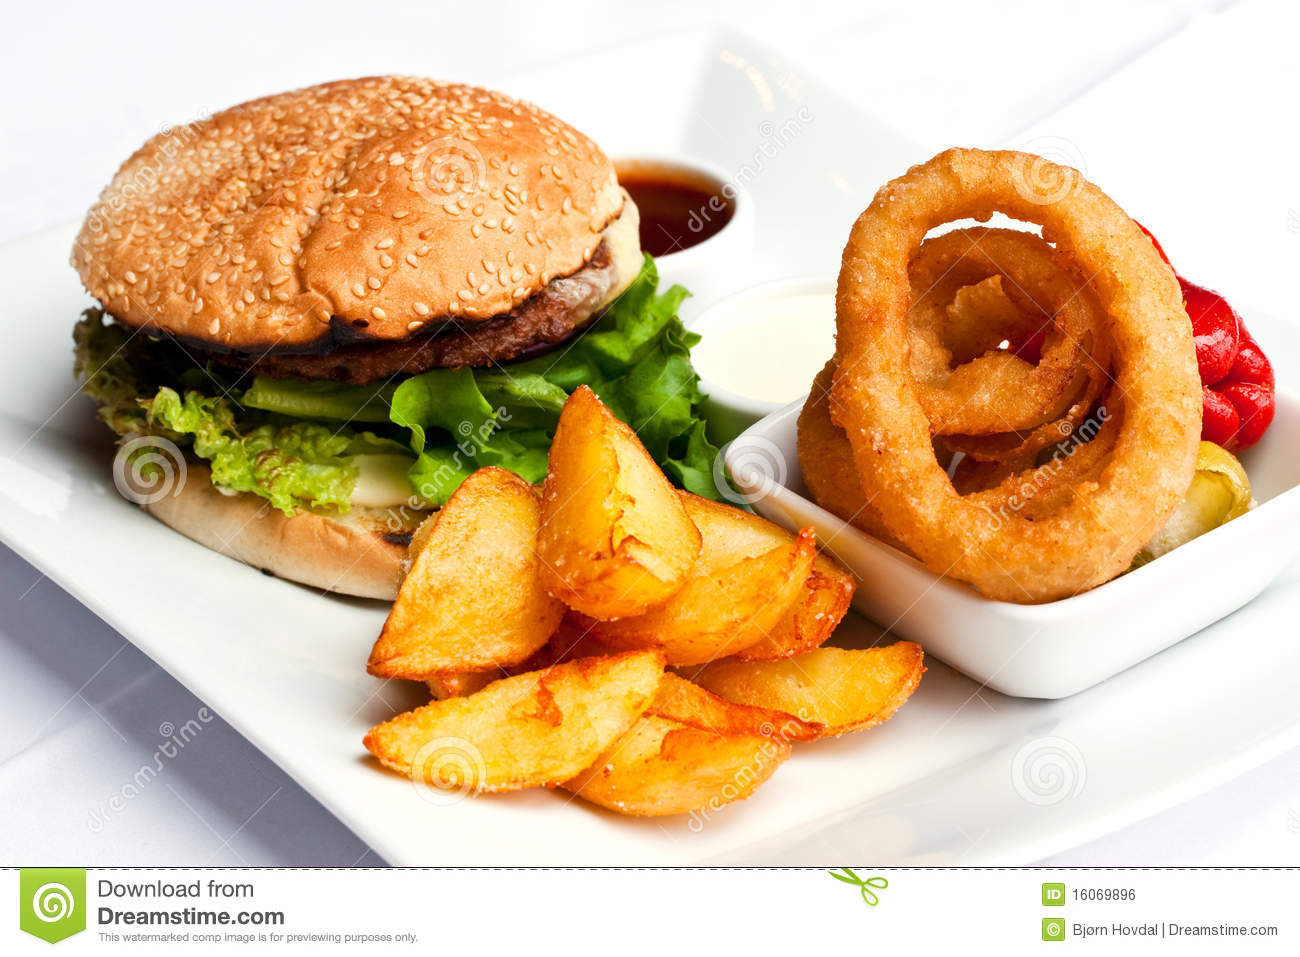 hamburger meal royalty free stock image image 16069896